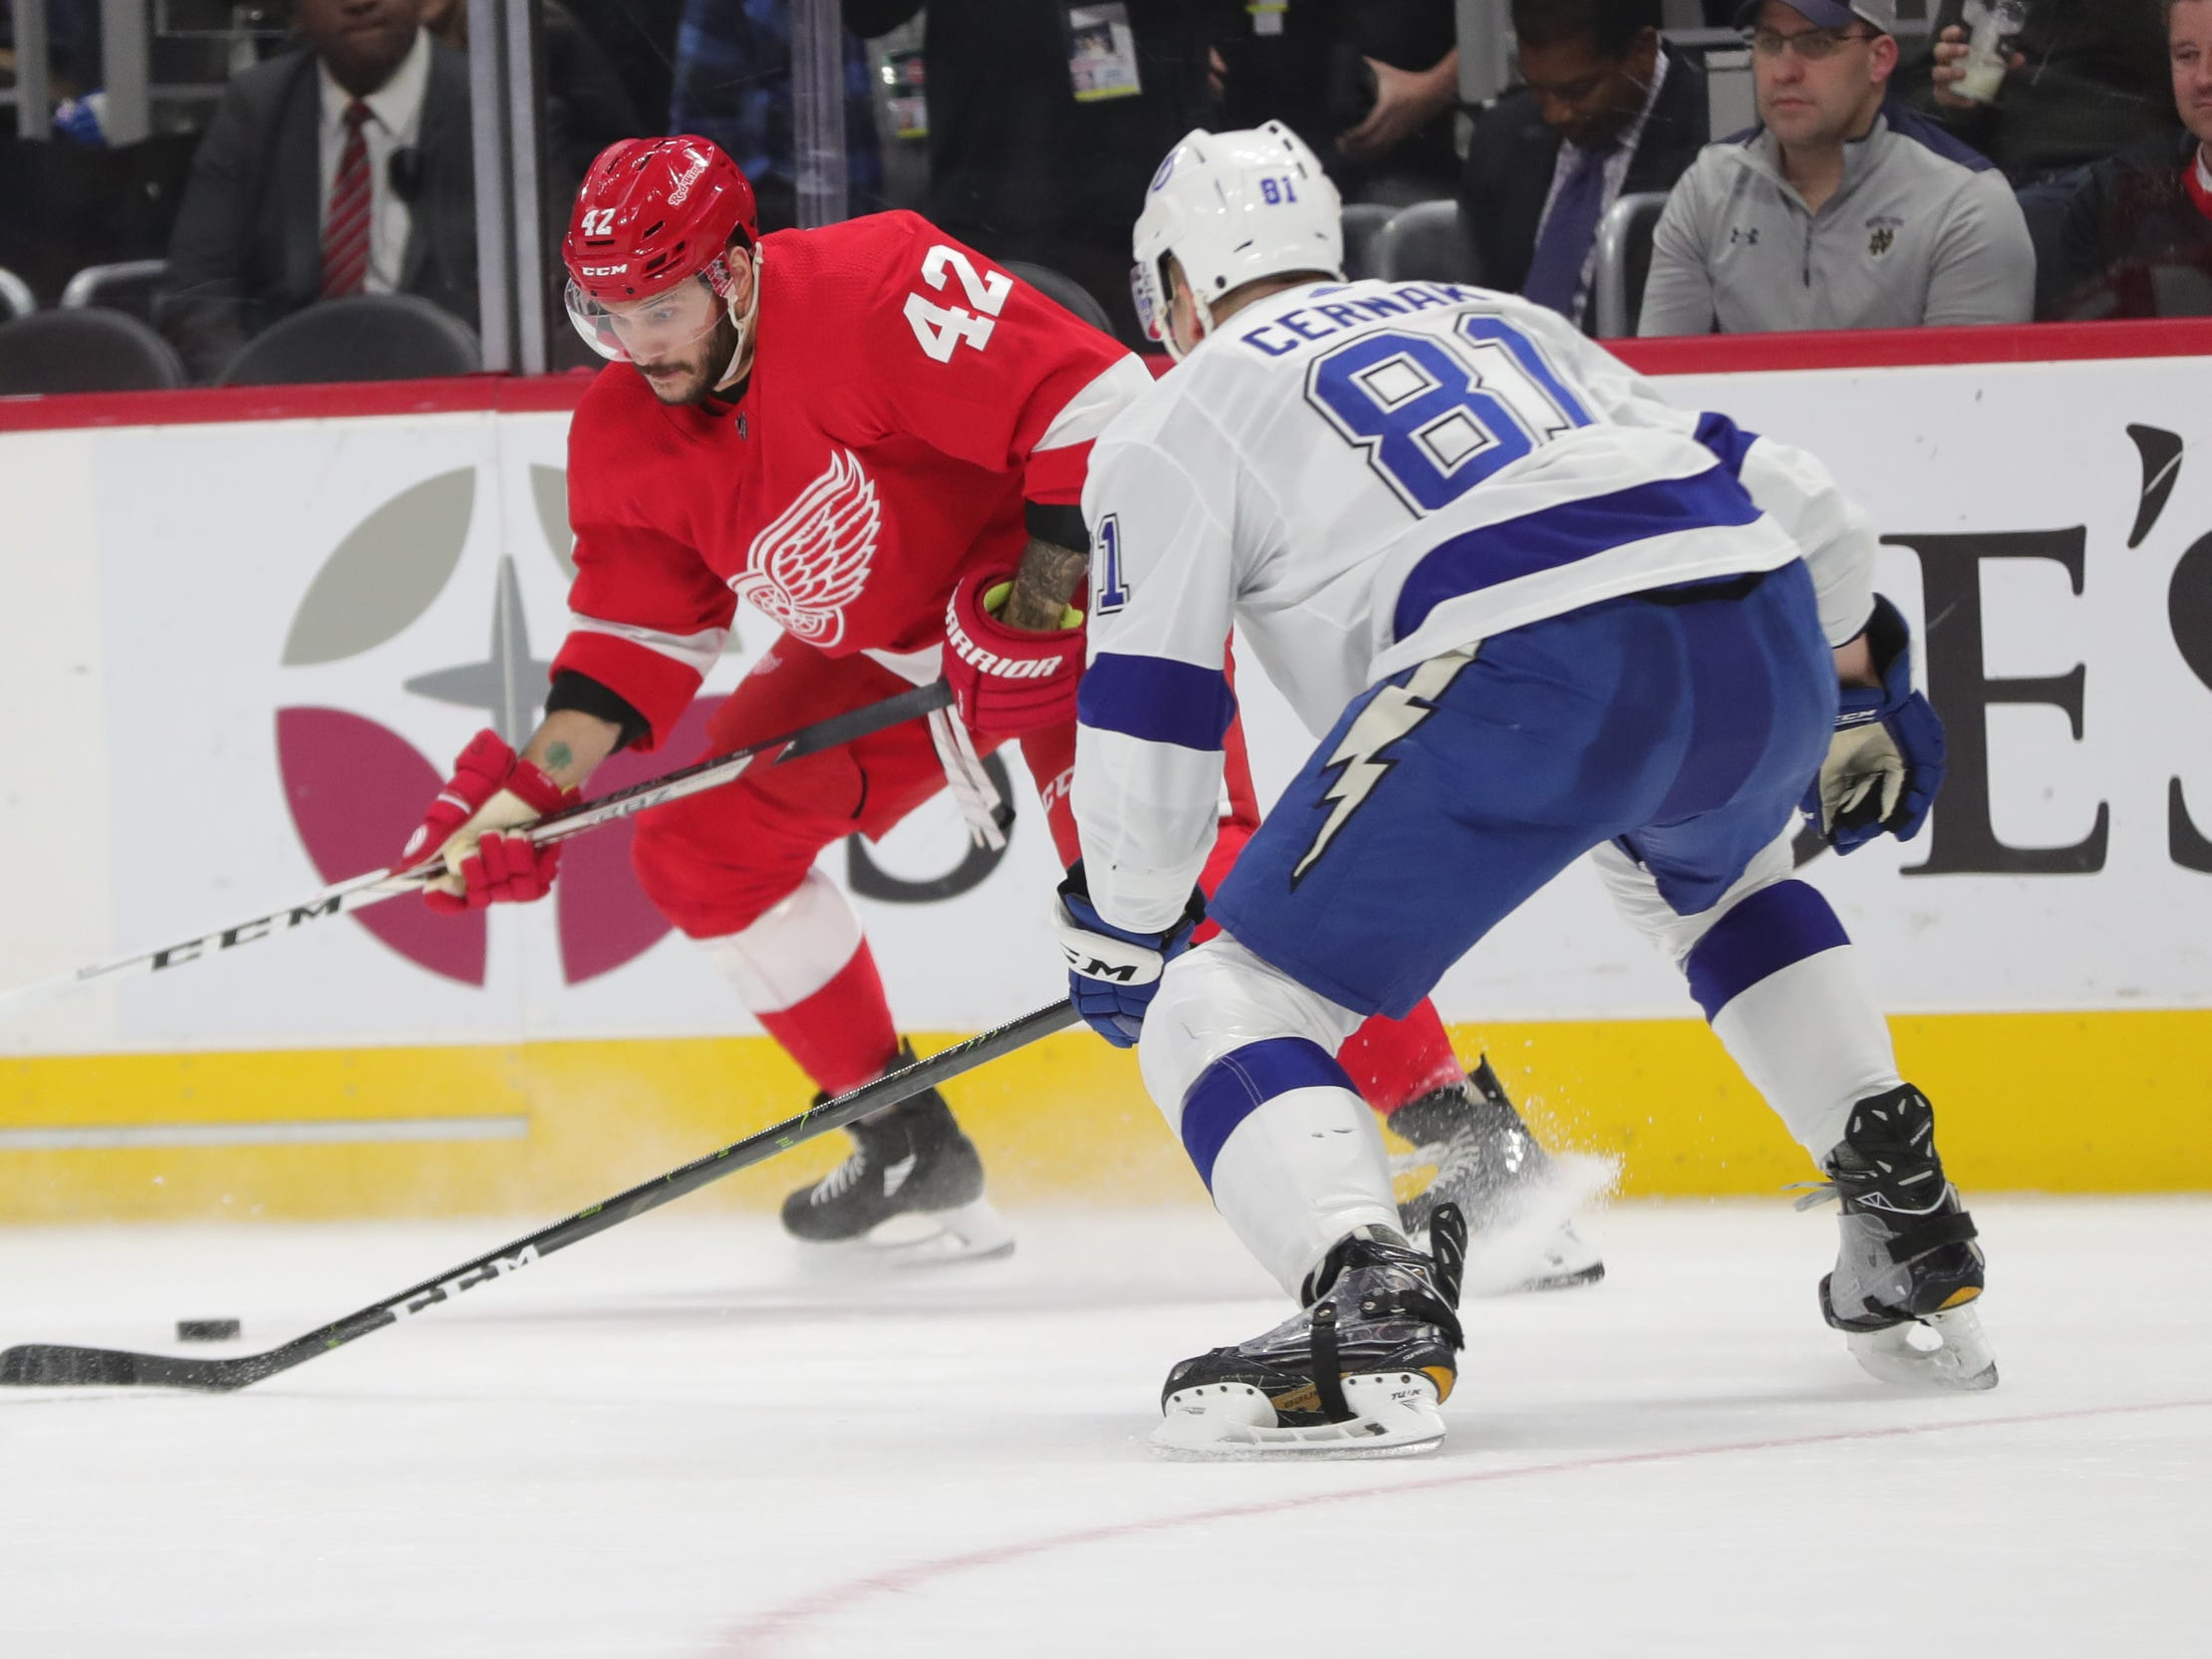 Red Wings lose wild game to Tampa Bay Lightning in shootout, 6-5